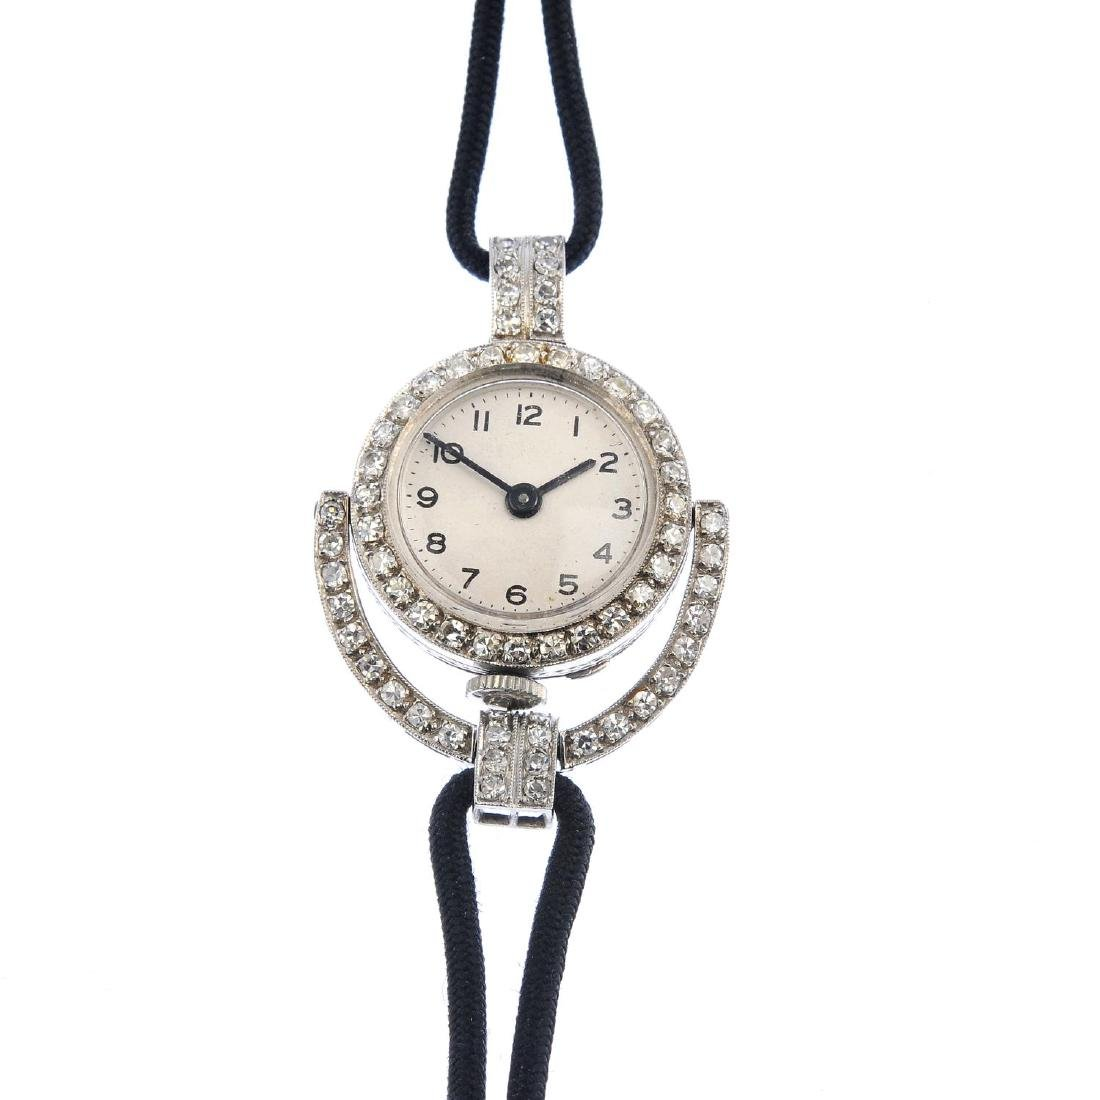 A lady's early 20th century diamond cocktail watch. The